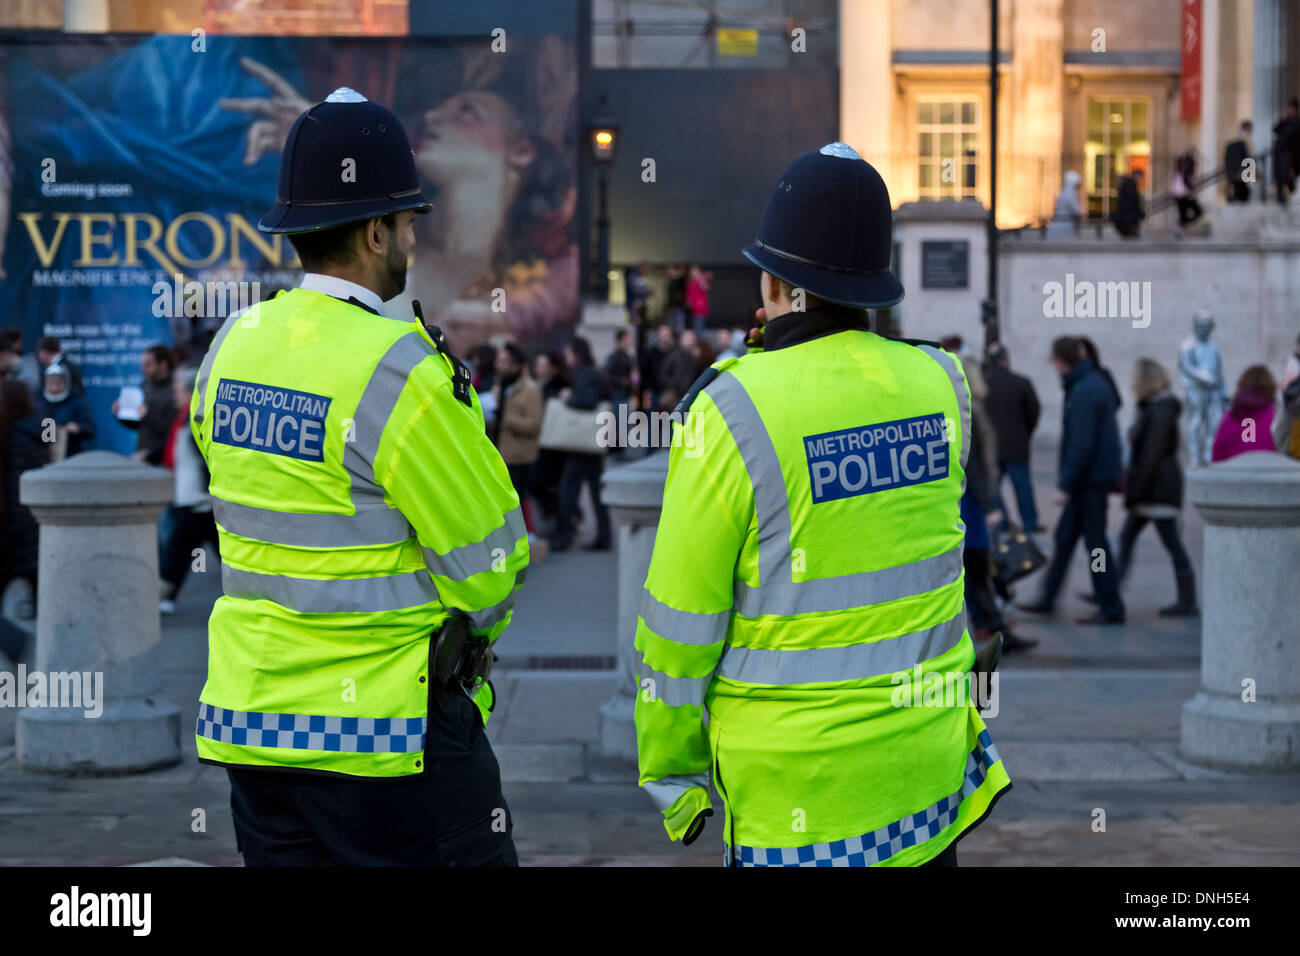 Metropolitan Police officers patrolling the streets of London, England - Stock Image